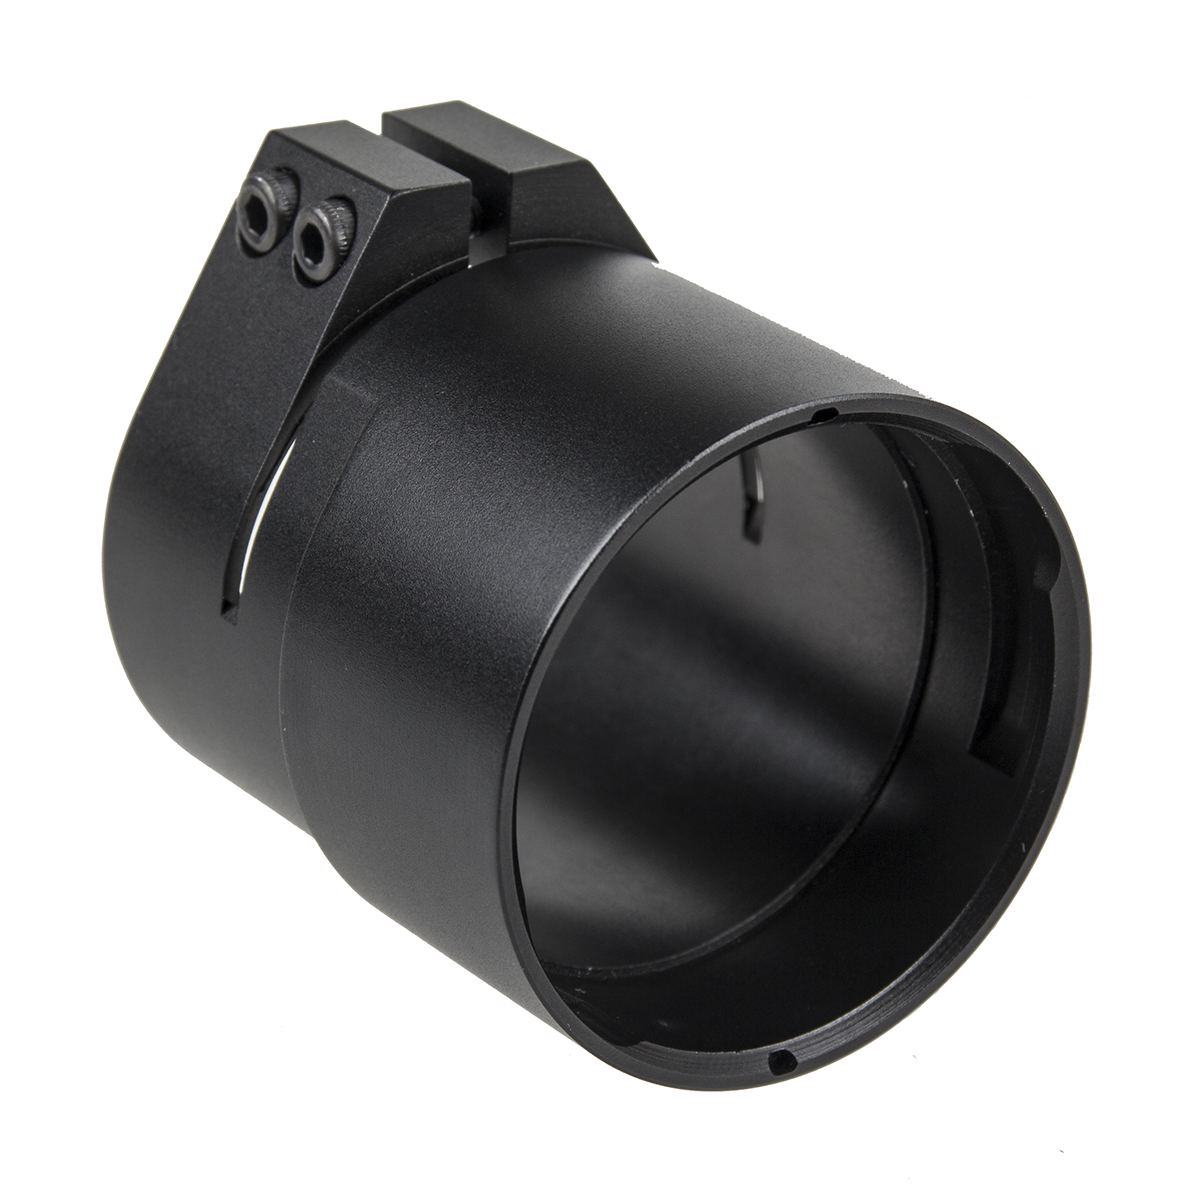 Image of Pard NV007 Adapter 48mm